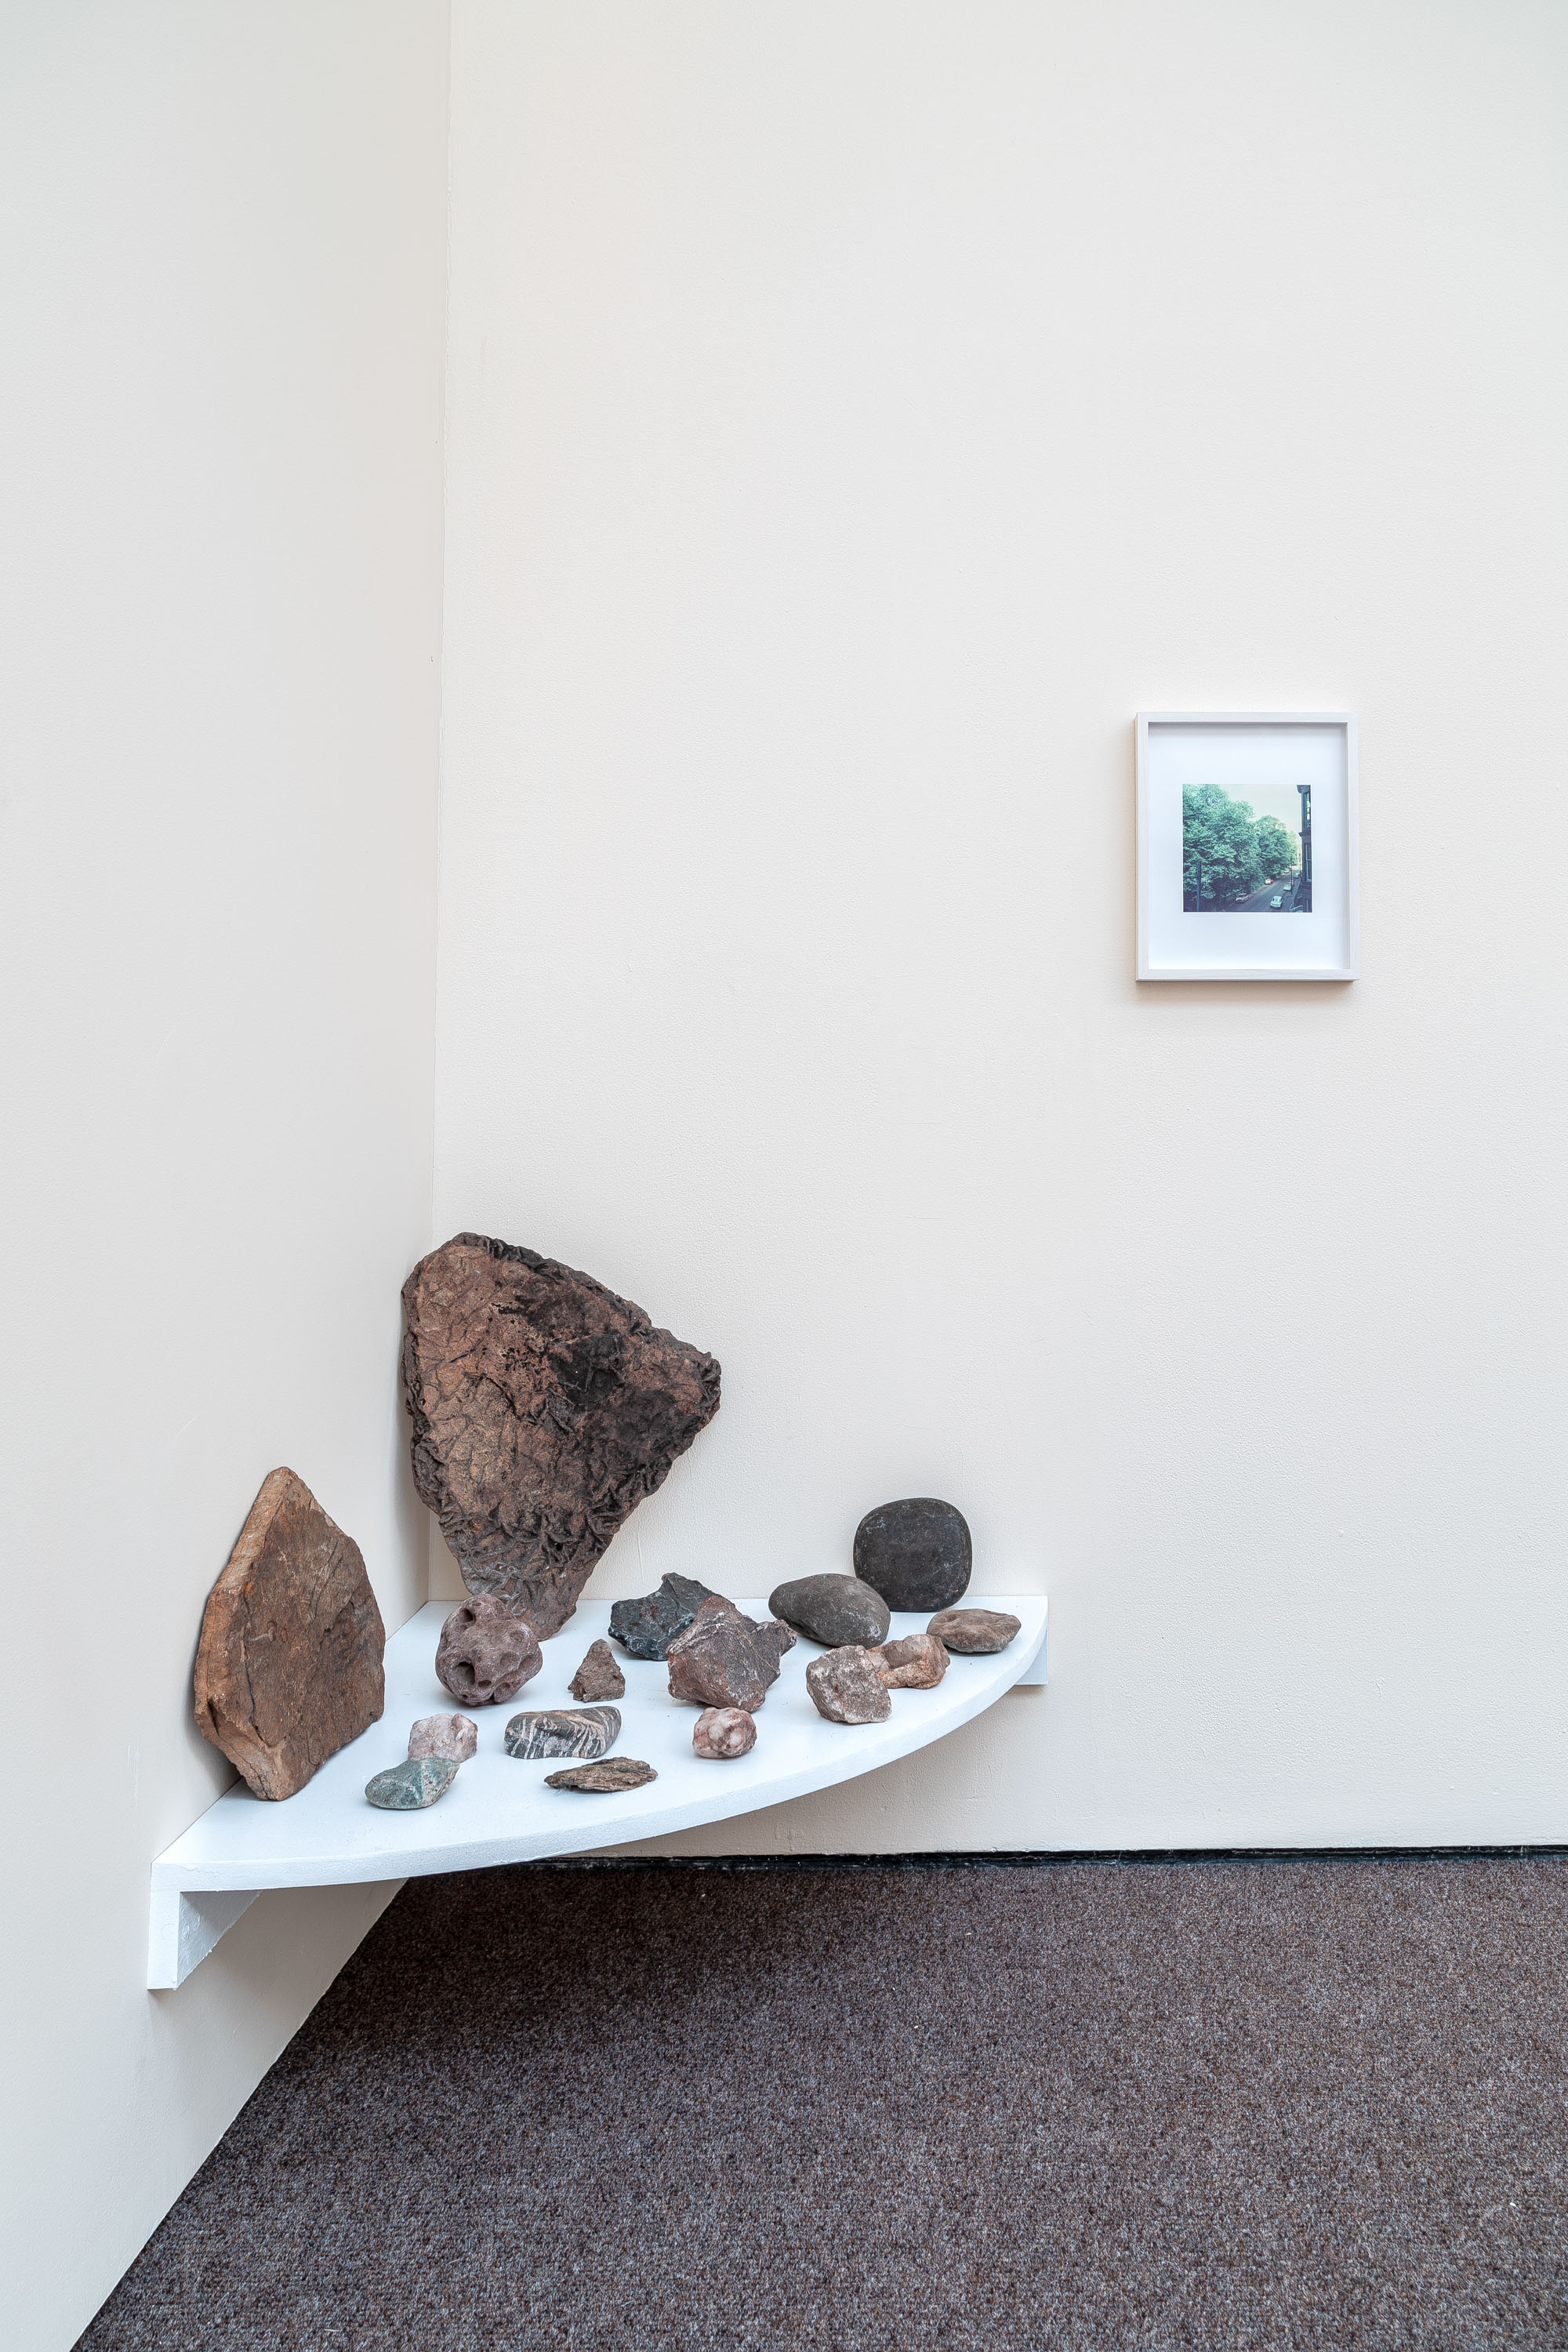 Installation view 'Index Cards and Letters', The Modern Institute, Osborne Street, 2021 (Part of Glasgow International 2021)